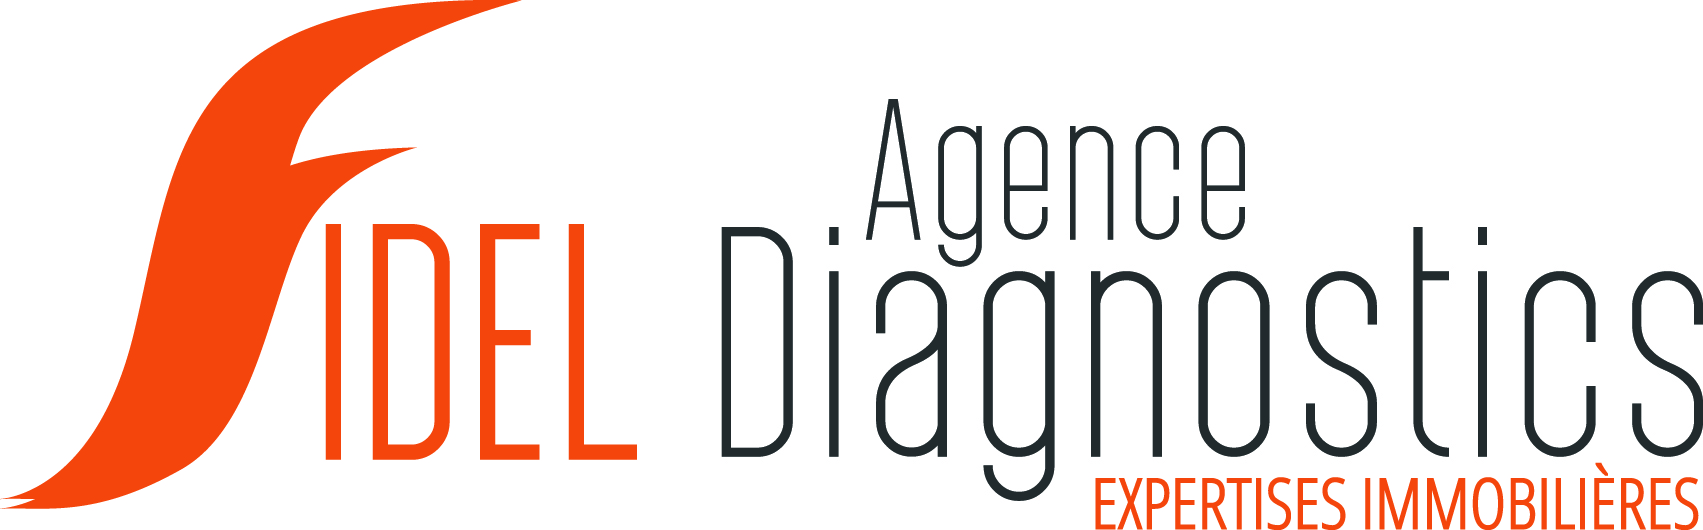 Agence FIDEL Diagnostics